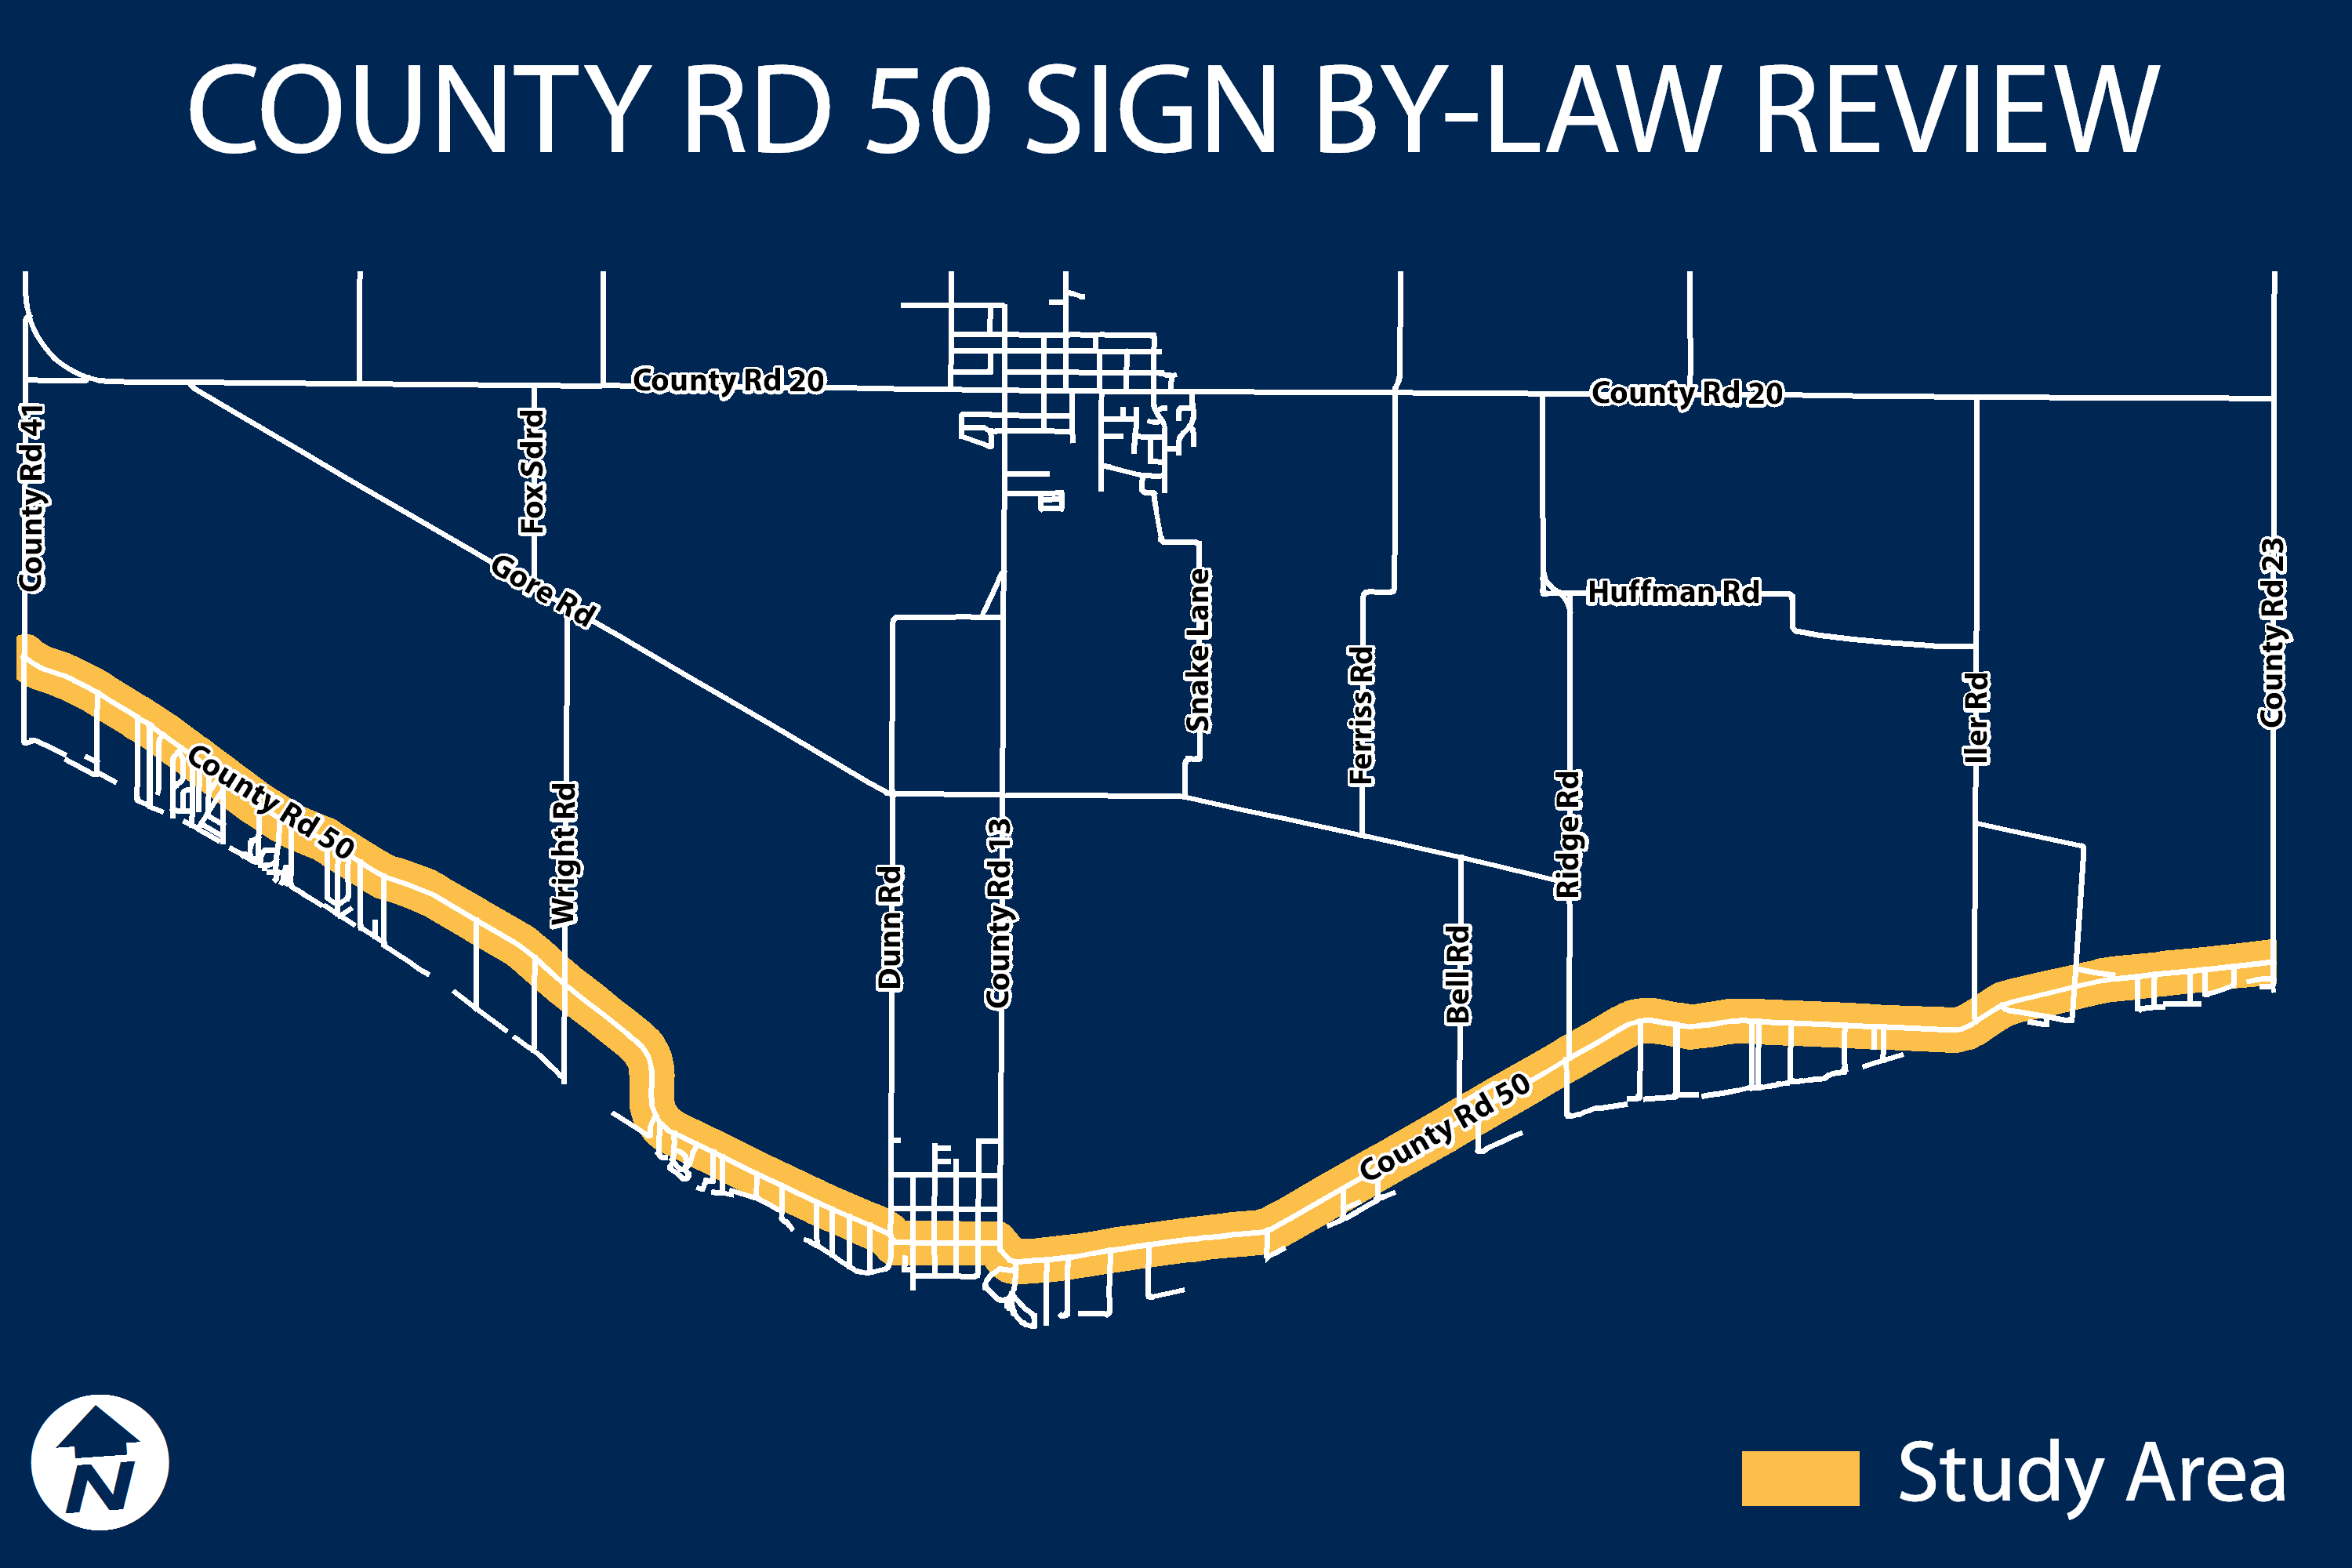 Map of the Sign By-law Study Area (showing County Road 50)